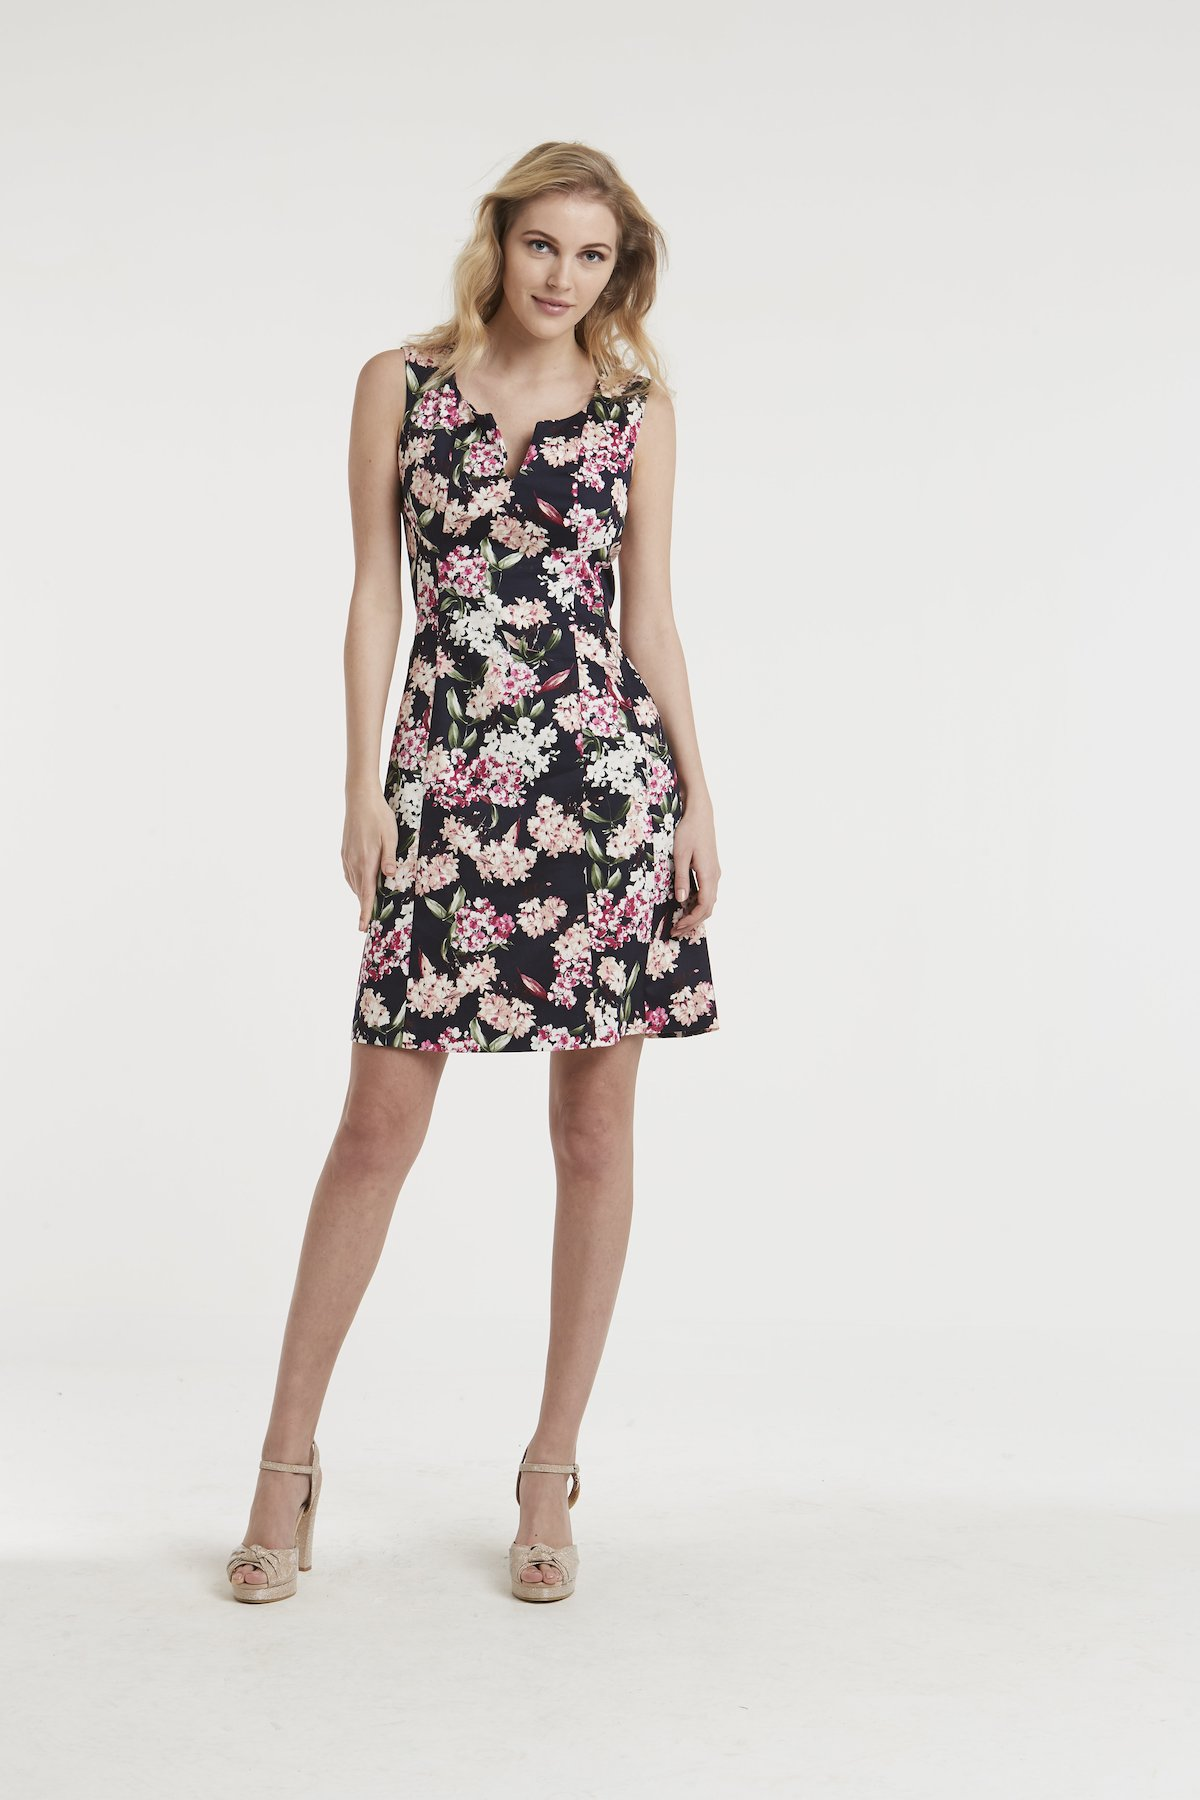 Adriano roses fantasy dress